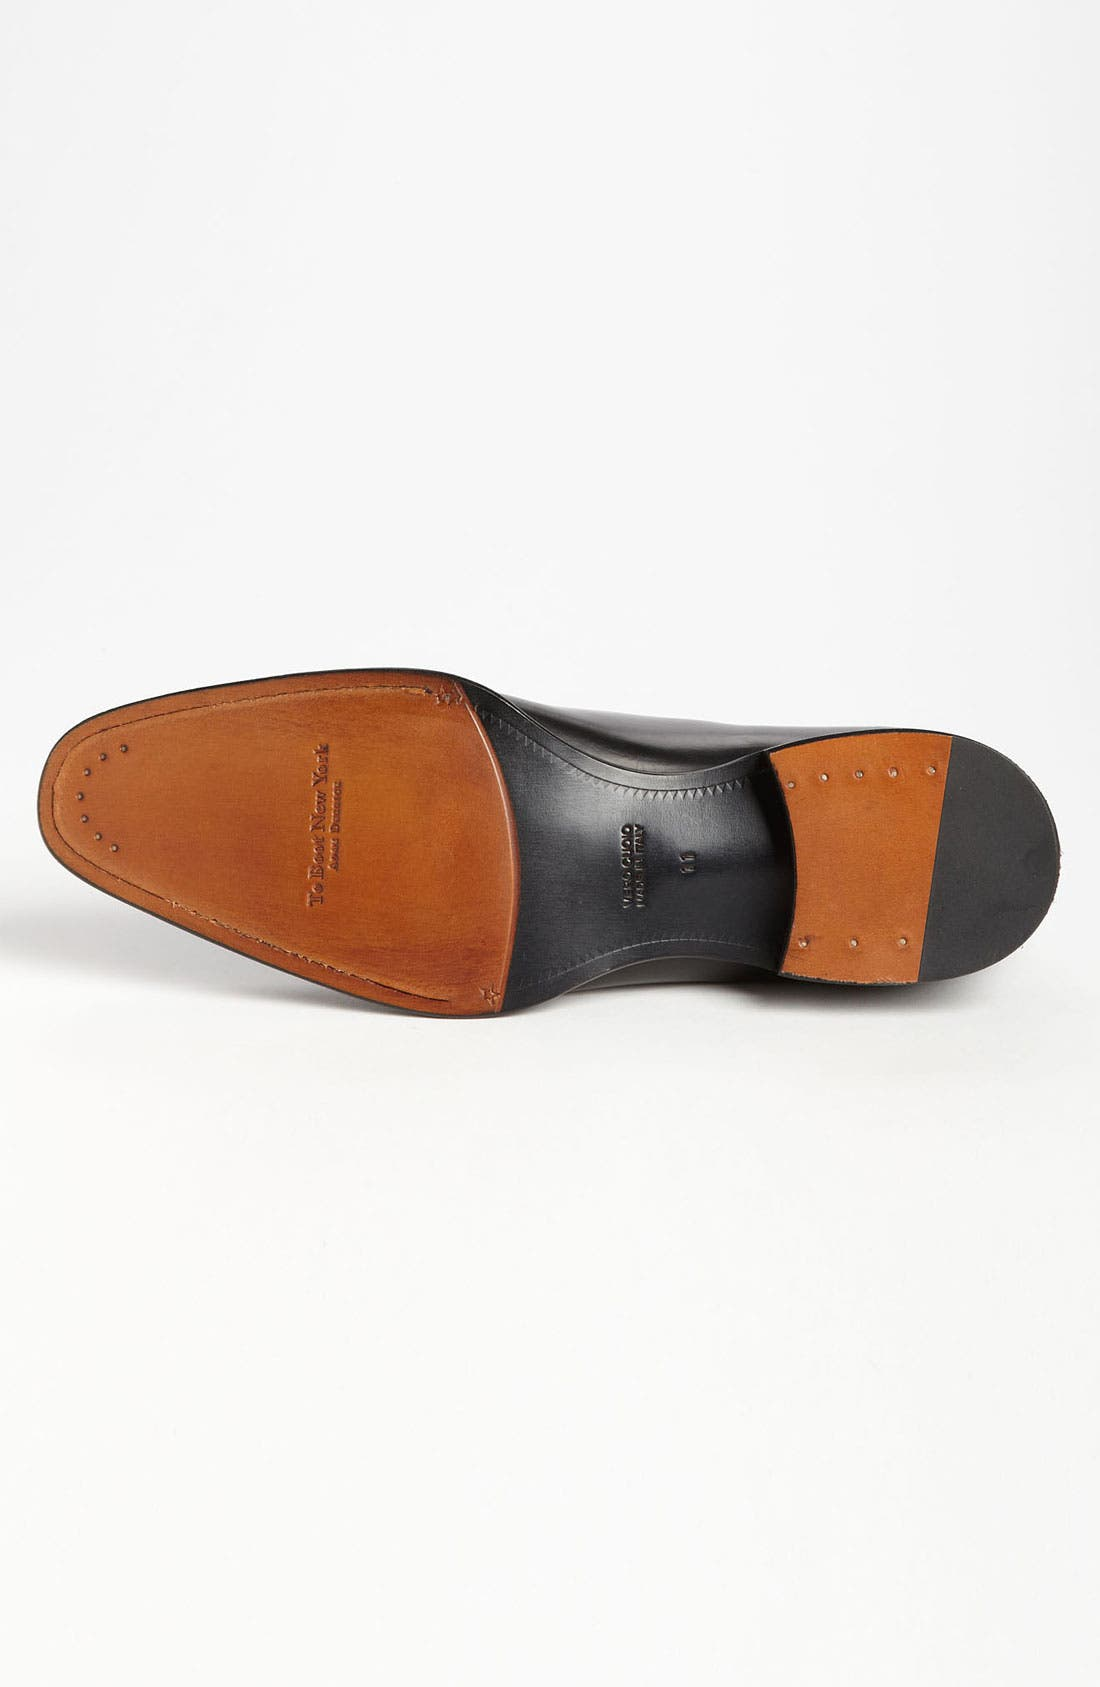 TO BOOT NEW YORK,                             'Warwick' Cap Toe Oxford,                             Alternate thumbnail 4, color,                             001